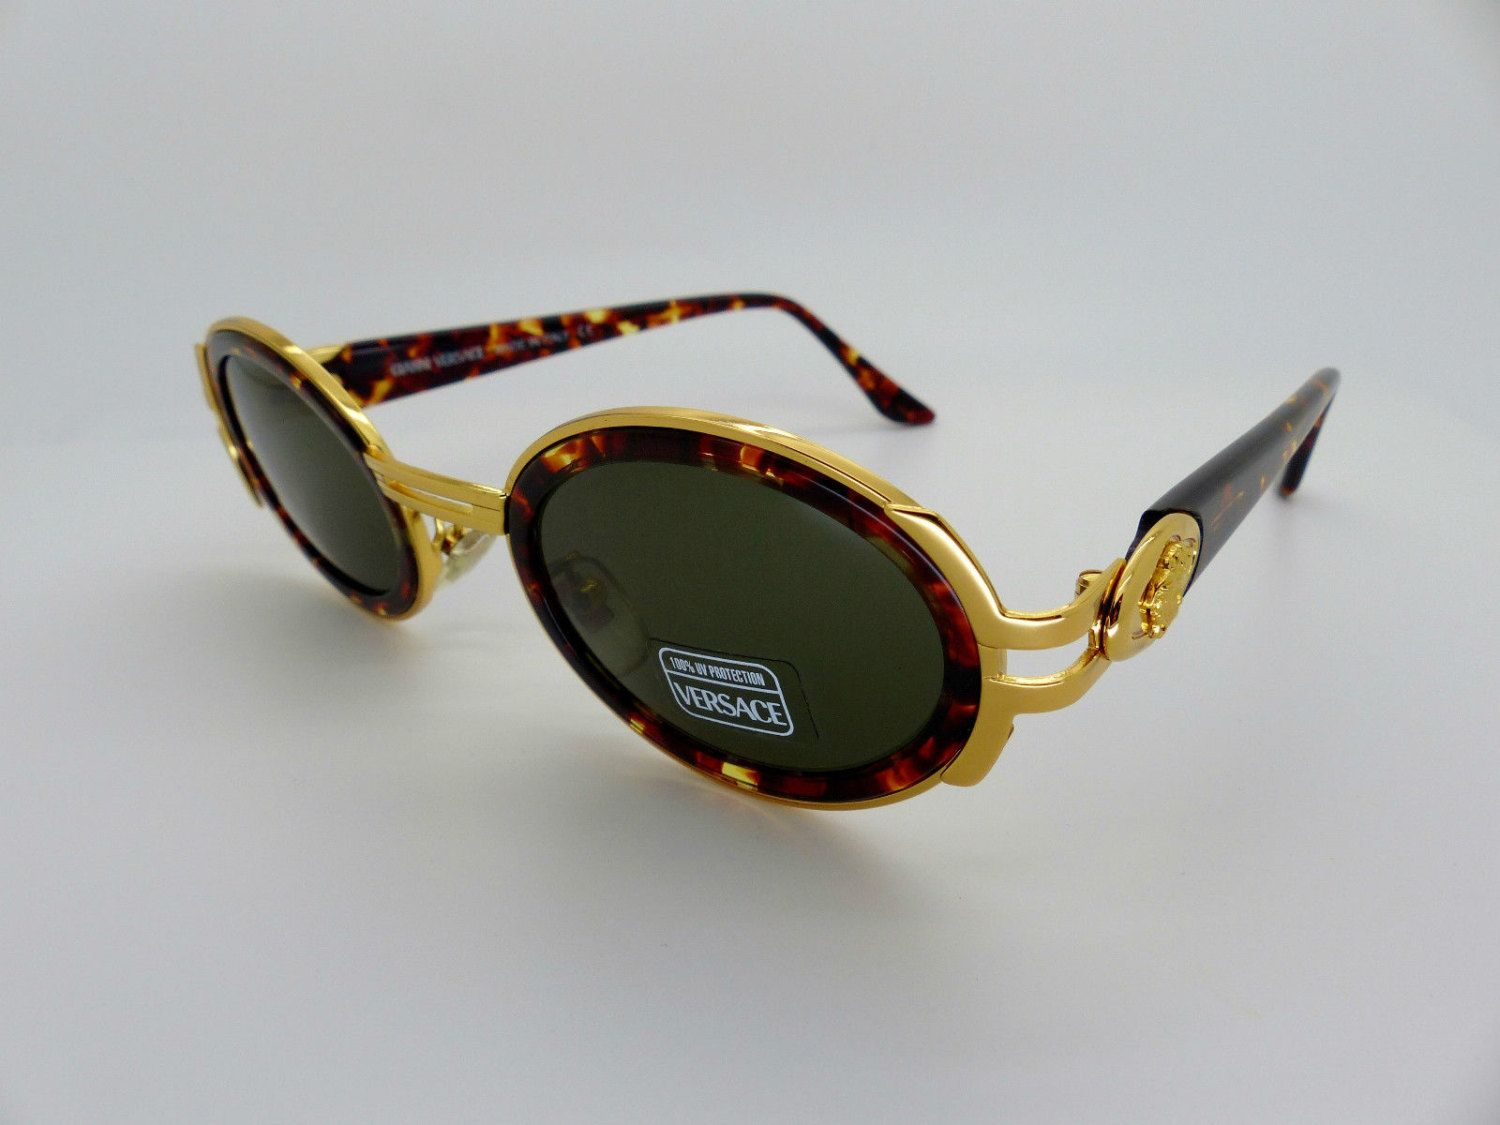 21f38a4eea55 Genuine Rare Vintage Gianni Versace Sunglasses Mod S02 Col A11 New Old  Stock by VSOx on Etsy